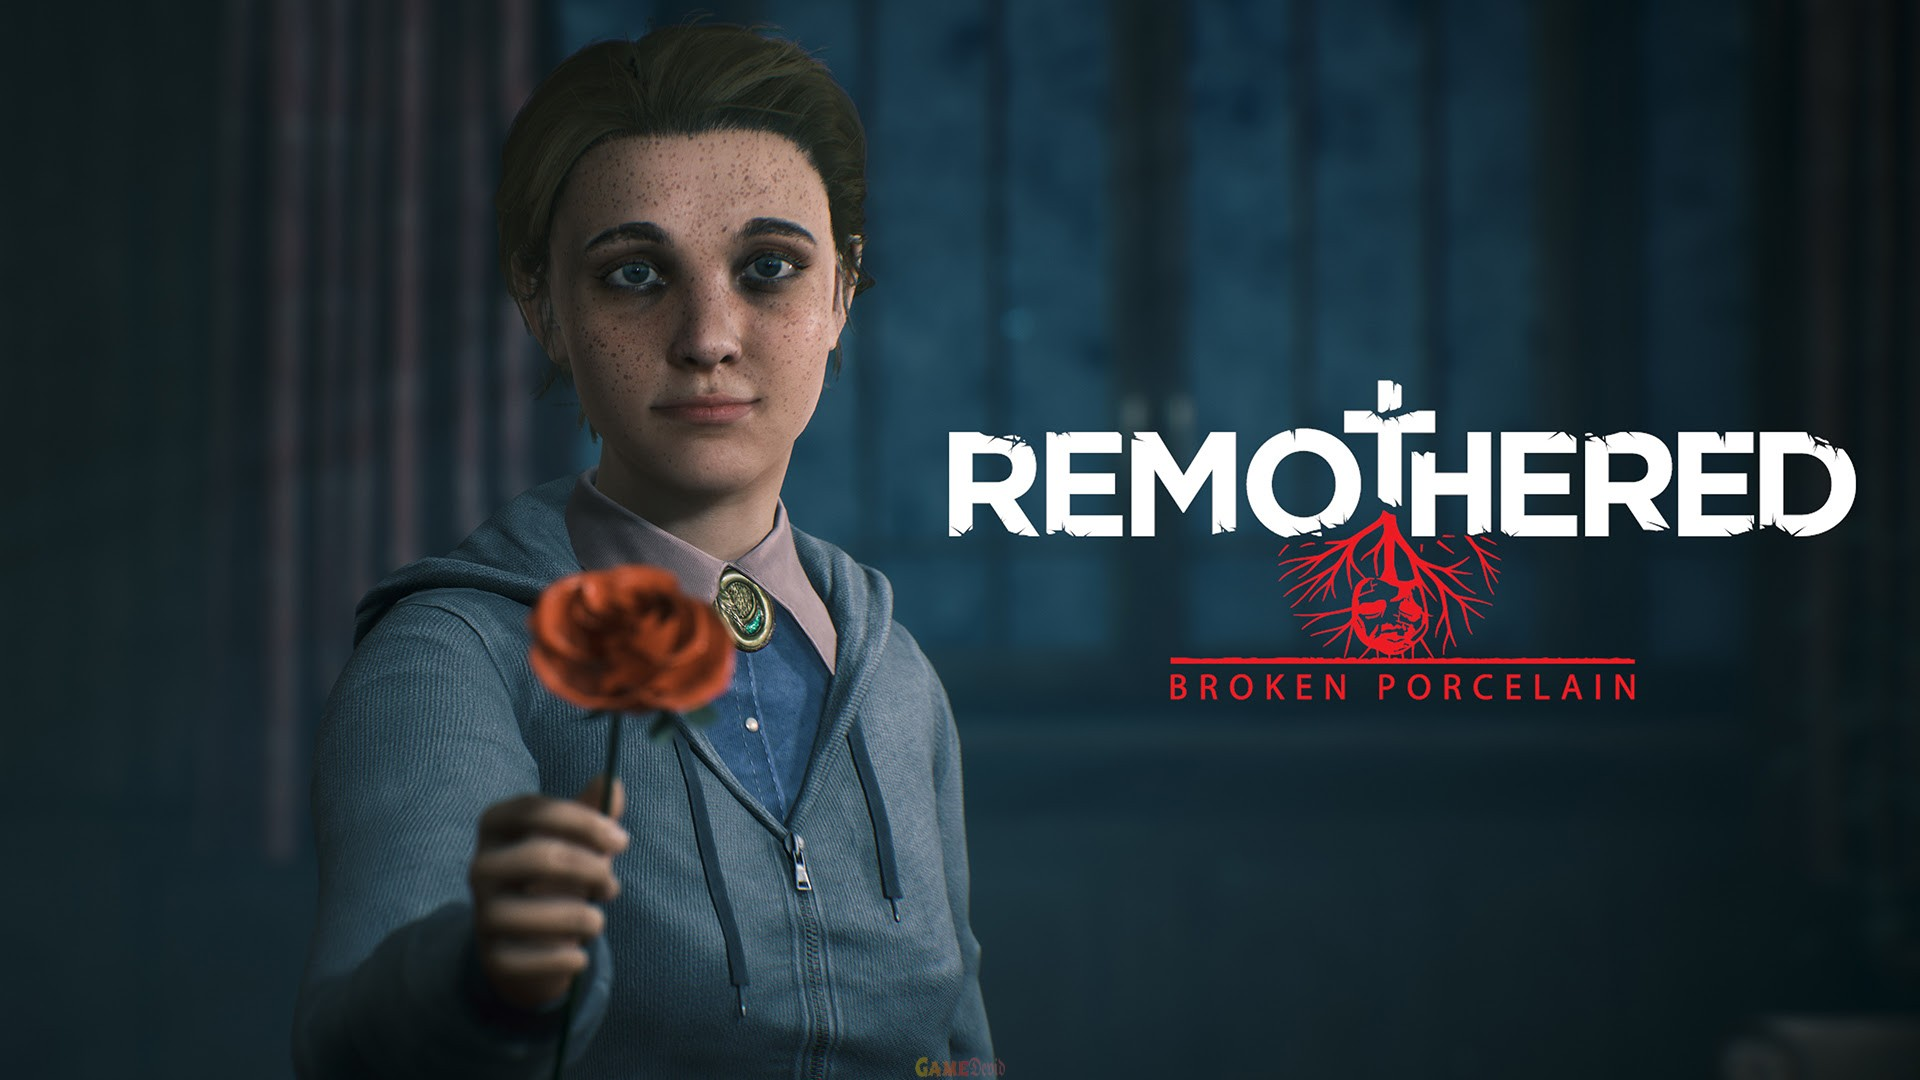 Remothered: Broken Porcelain PC Full Game Latest Version Download Now